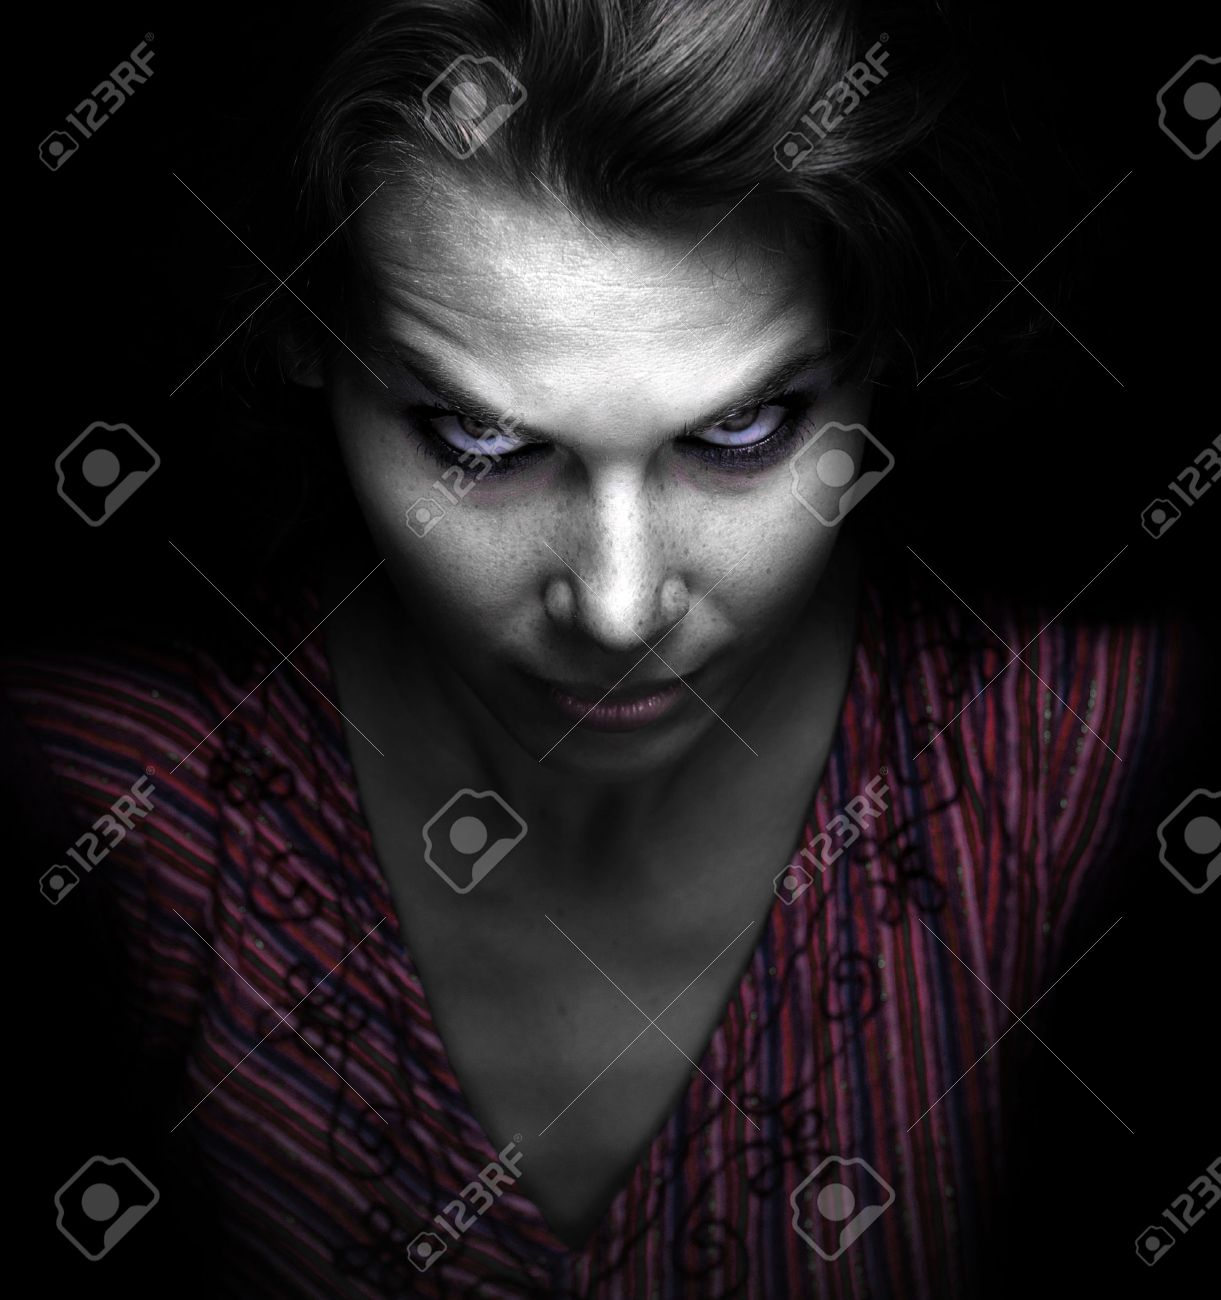 Scary spooky evil woman in the dark Stock Photo - 45393300